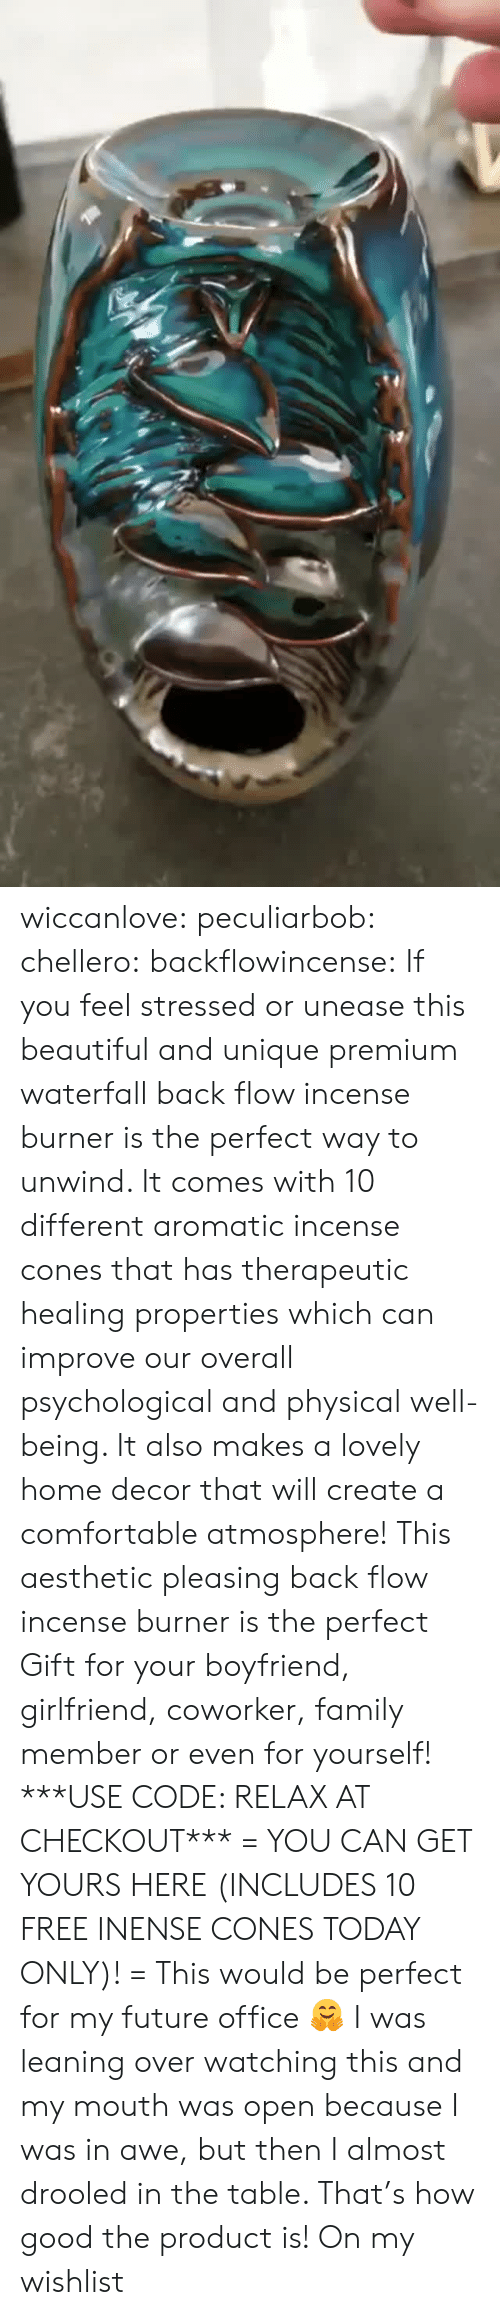 decor: wiccanlove:  peculiarbob: chellero:   backflowincense:  If you feel stressed or unease this beautiful and unique premium waterfall back flow incense burner is the perfect way to unwind. It comes with 10 different aromatic incense cones that has therapeutic healing properties which can improve our overall psychological and physical well-being. It also makes a lovely home decor that will create a comfortable atmosphere! This aesthetic pleasing back flow incense burner is the perfect Gift for your boyfriend, girlfriend, coworker, family member or even for yourself! ***USE CODE: RELAX AT CHECKOUT*** = YOU CAN GET YOURS HERE (INCLUDES 10 FREE INENSE CONES TODAY ONLY)! =   This would be perfect for my future office 🤗   I was leaning over watching this and my mouth was open because I was in awe, but then I almost drooled in the table. That's how good the product is!   On my wishlist